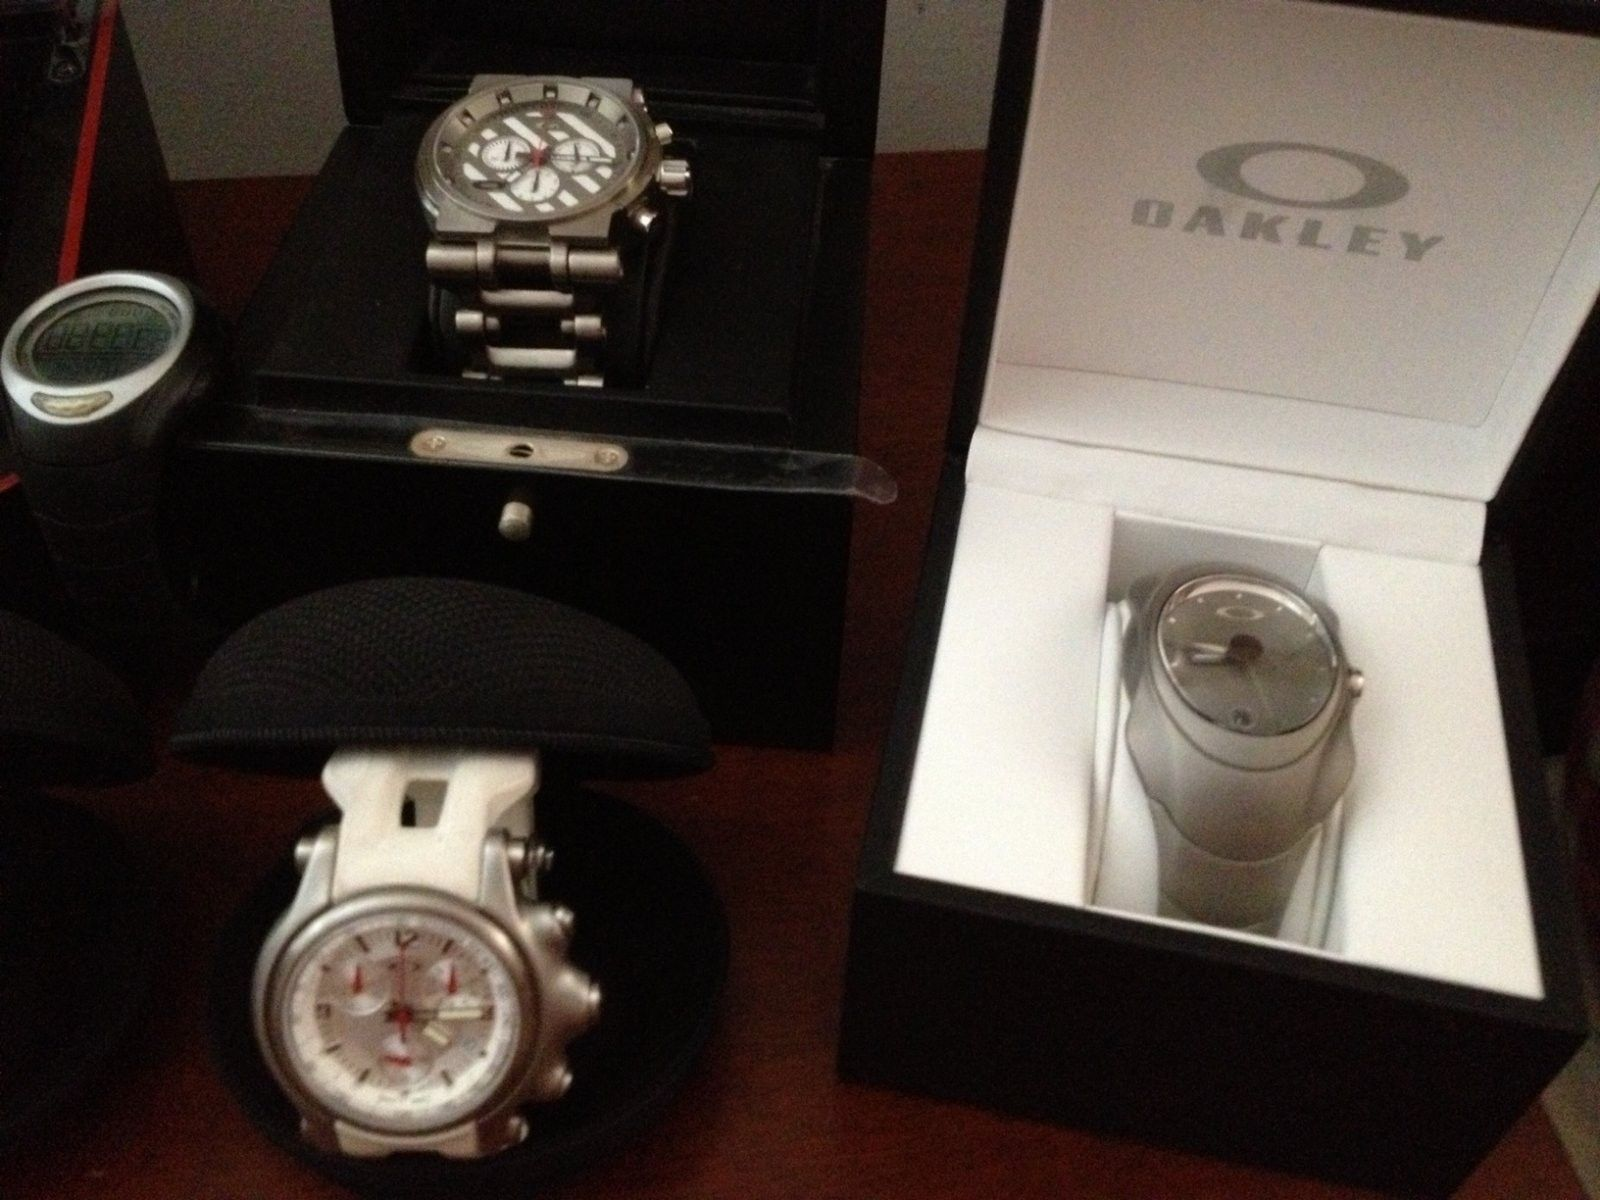 My Oakley Watch Collection - watch collection 2.jpg